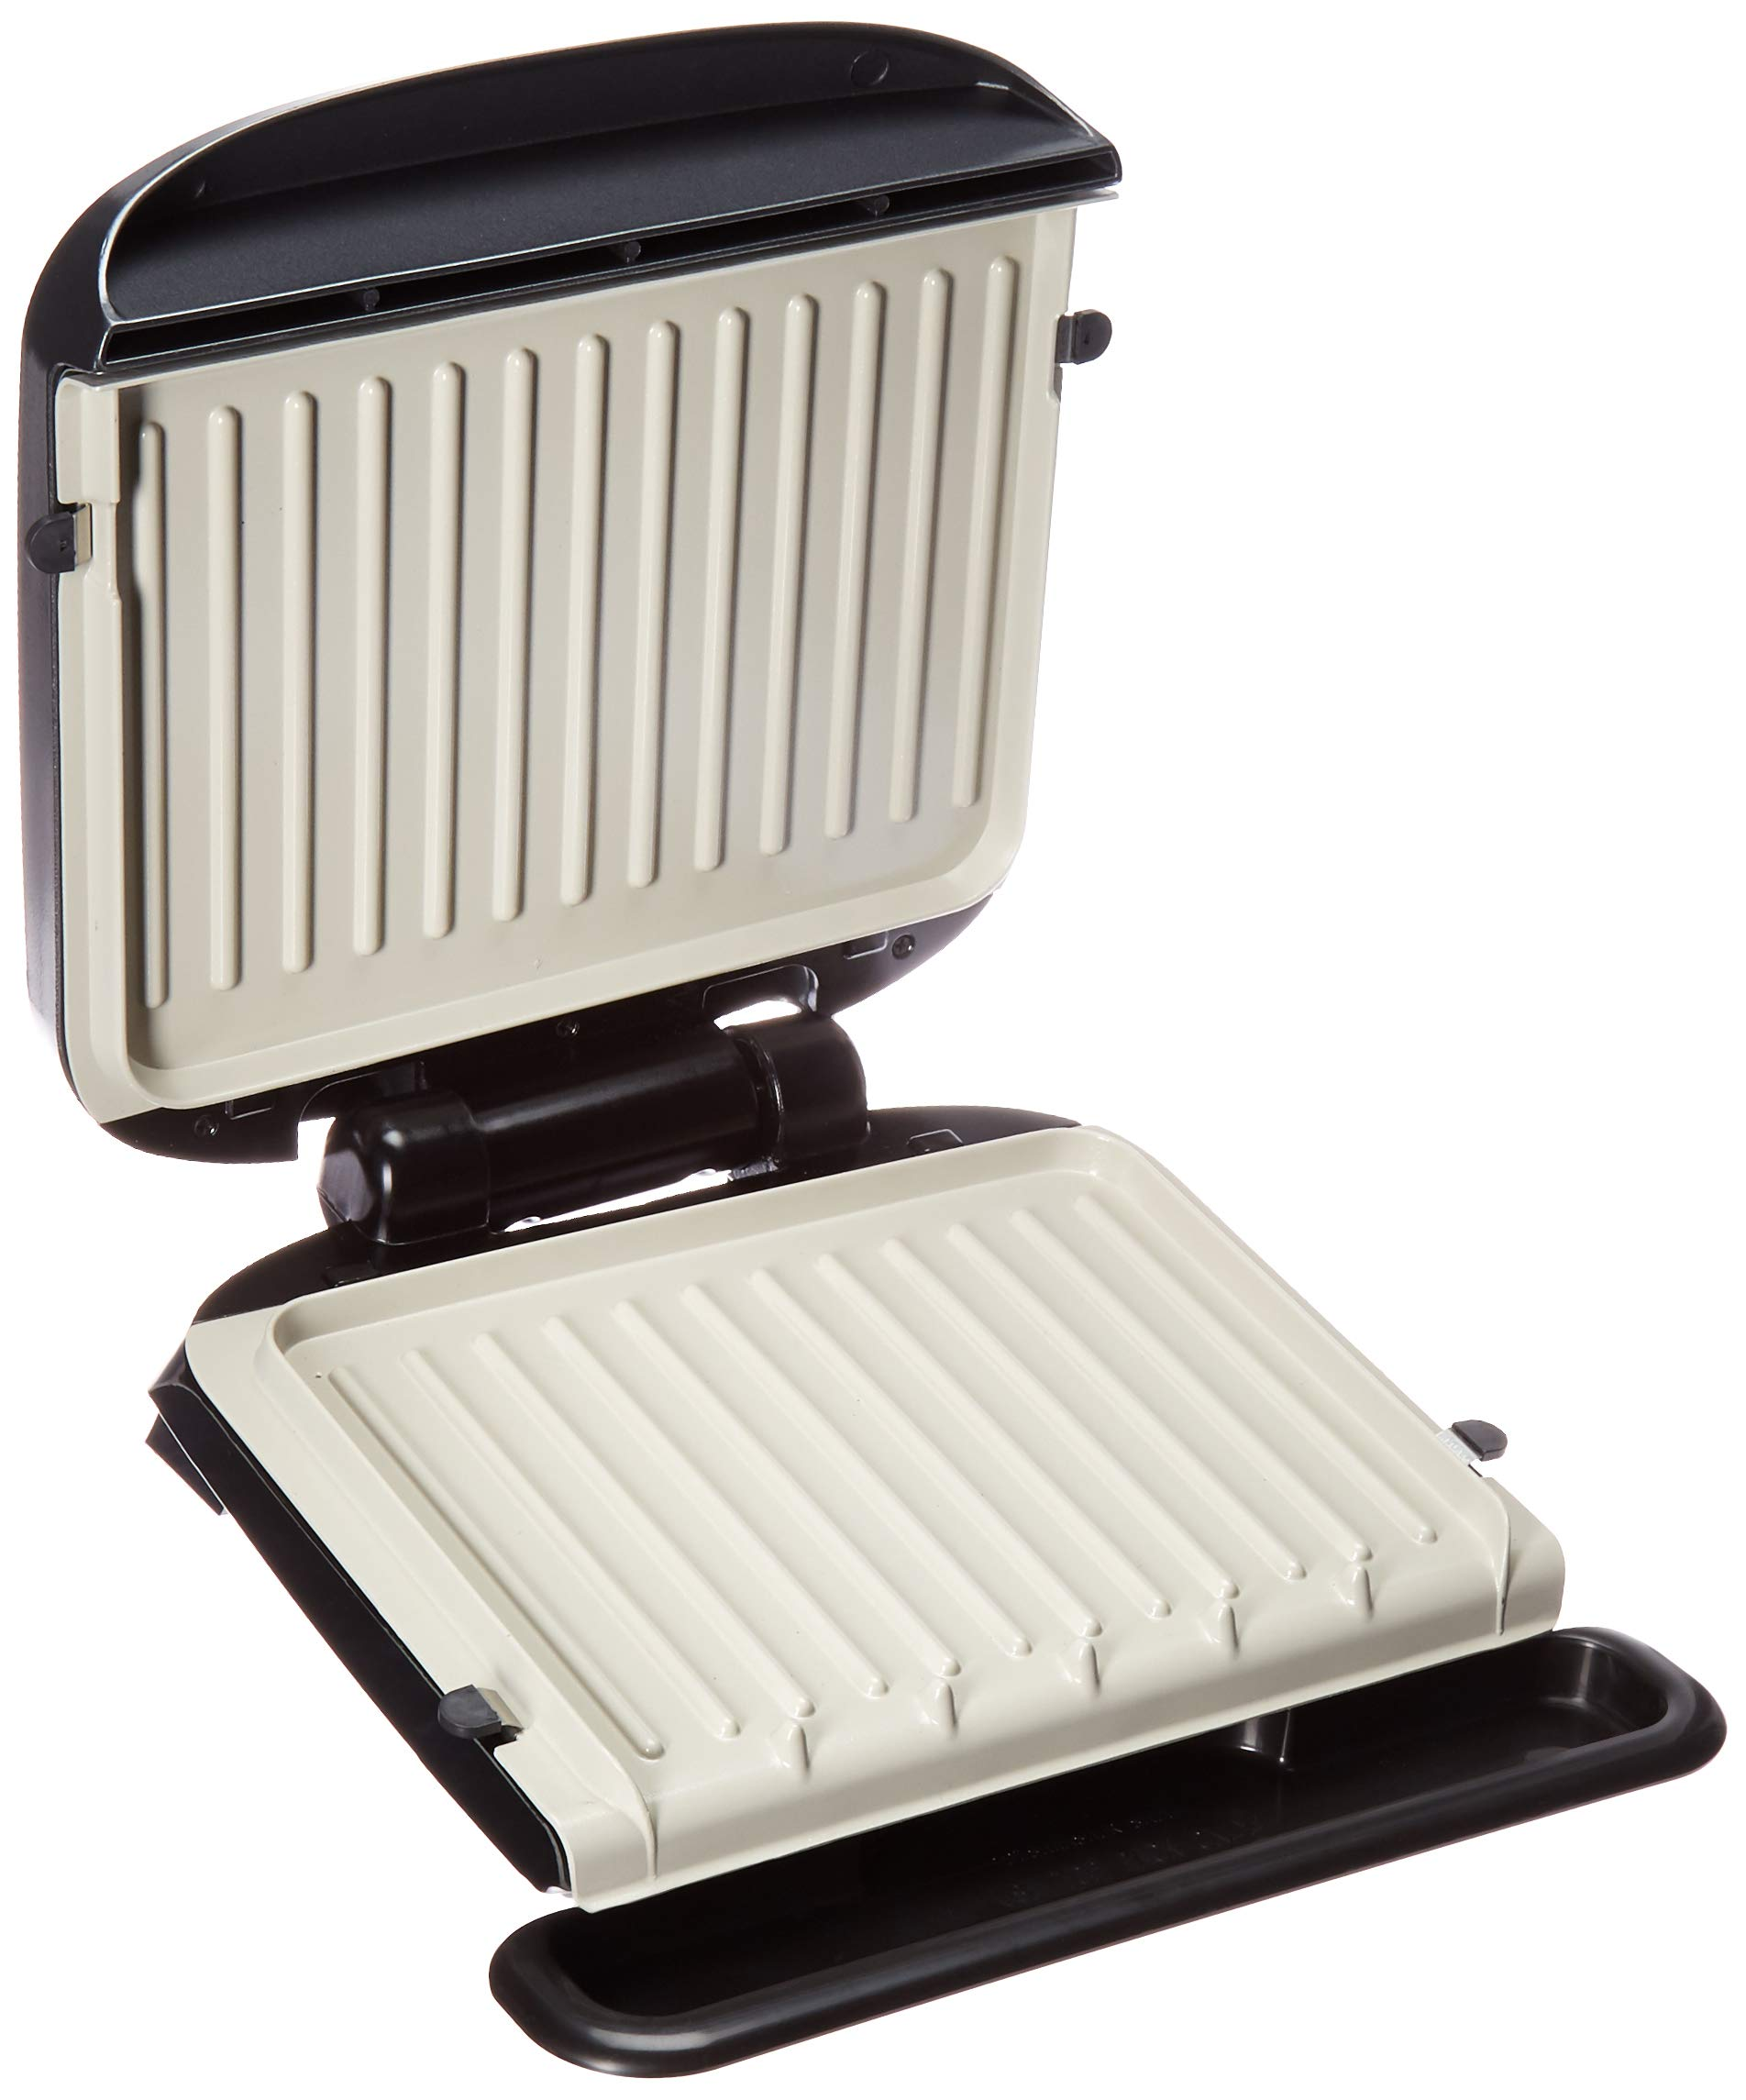 George Foreman GRP3260GM 4-Serving Removable Plate & Panini Digital Temperature-Black Indoor Electric Grill, 100 Square Inch, Silver